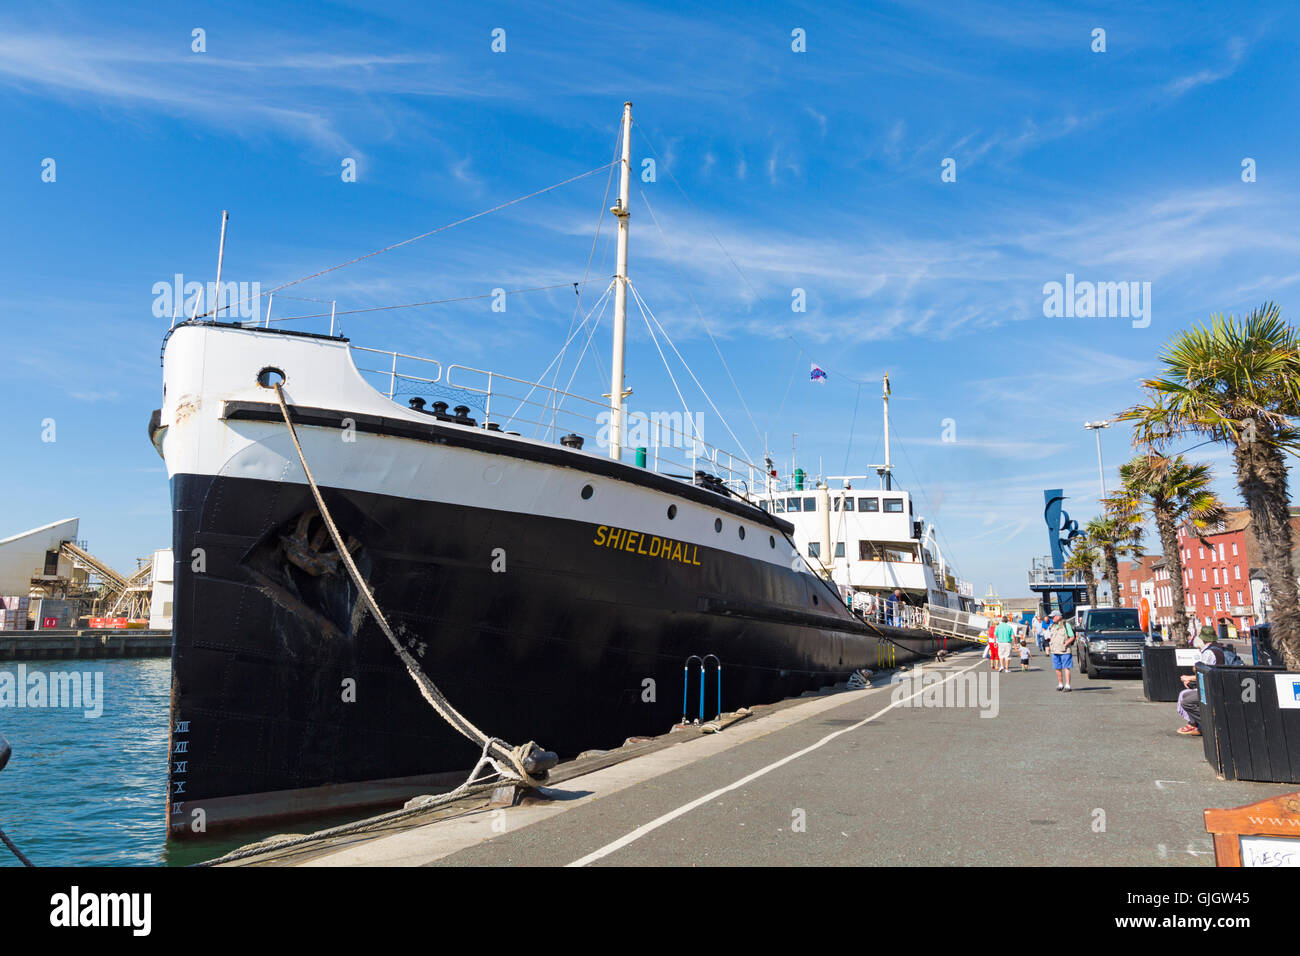 Poole, Dorset, UK. 16 August 2016 UK weather: Shieldhall, the largest working steamship of her kind in Europe, is Stock Photo